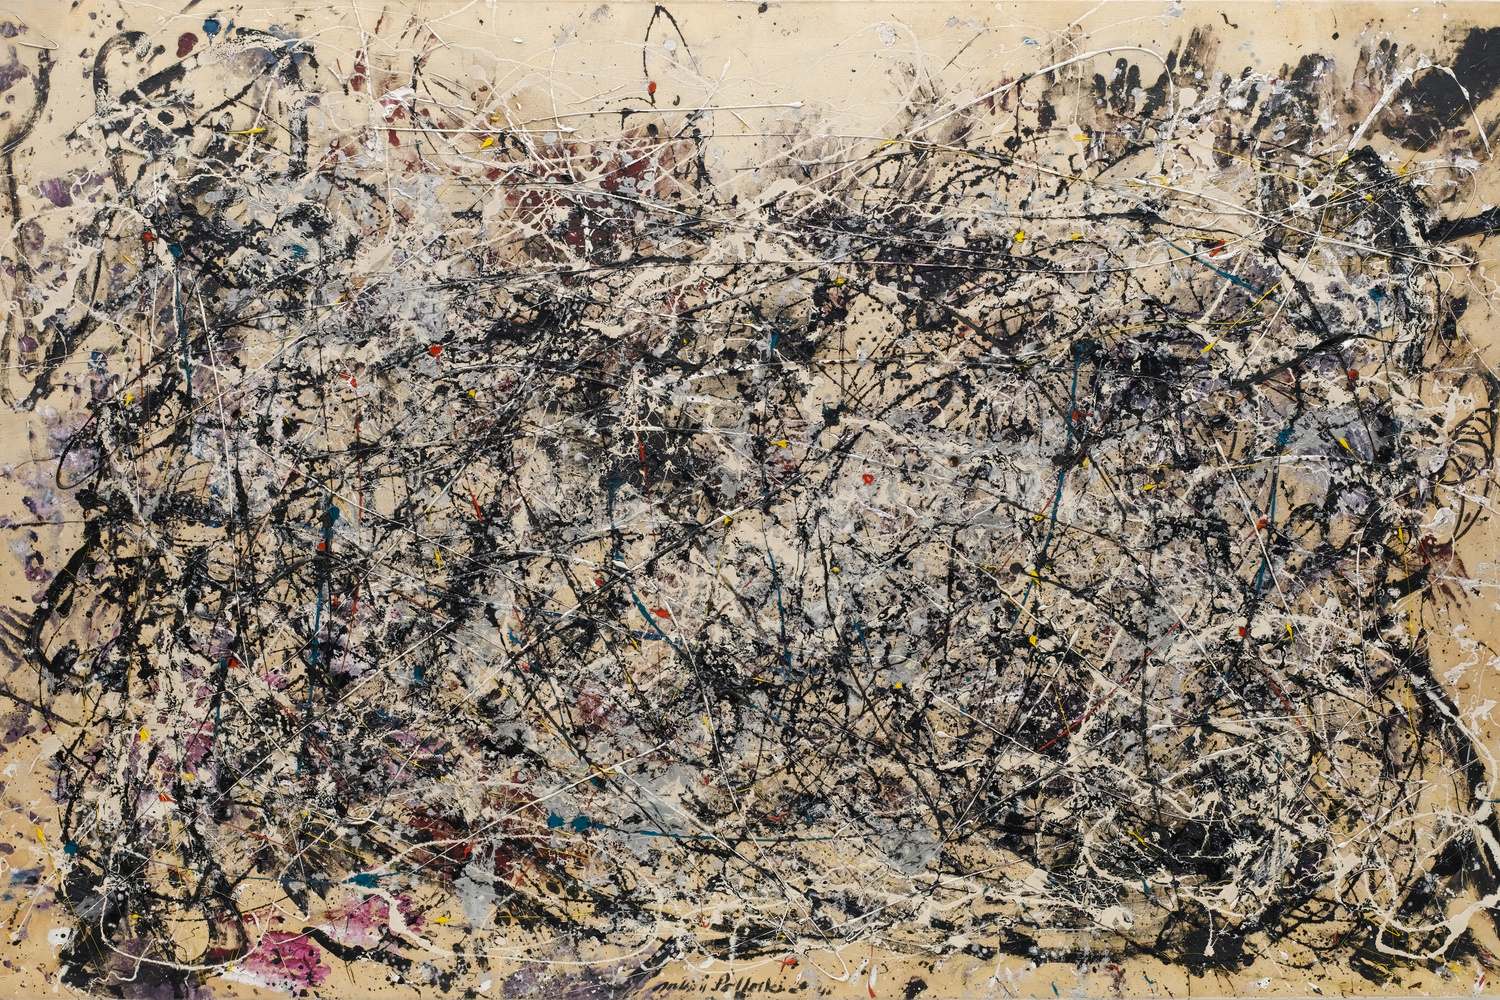 Jackson Pollock. Number 1A, 1948. 1948. Oil and enamel paint on canvas. Purchase. Conservation was made possible by the Bank of America Art Conservation Project. © 2019 Pollock-Krasner Foundation/Artists Rights Society (ARS), New York